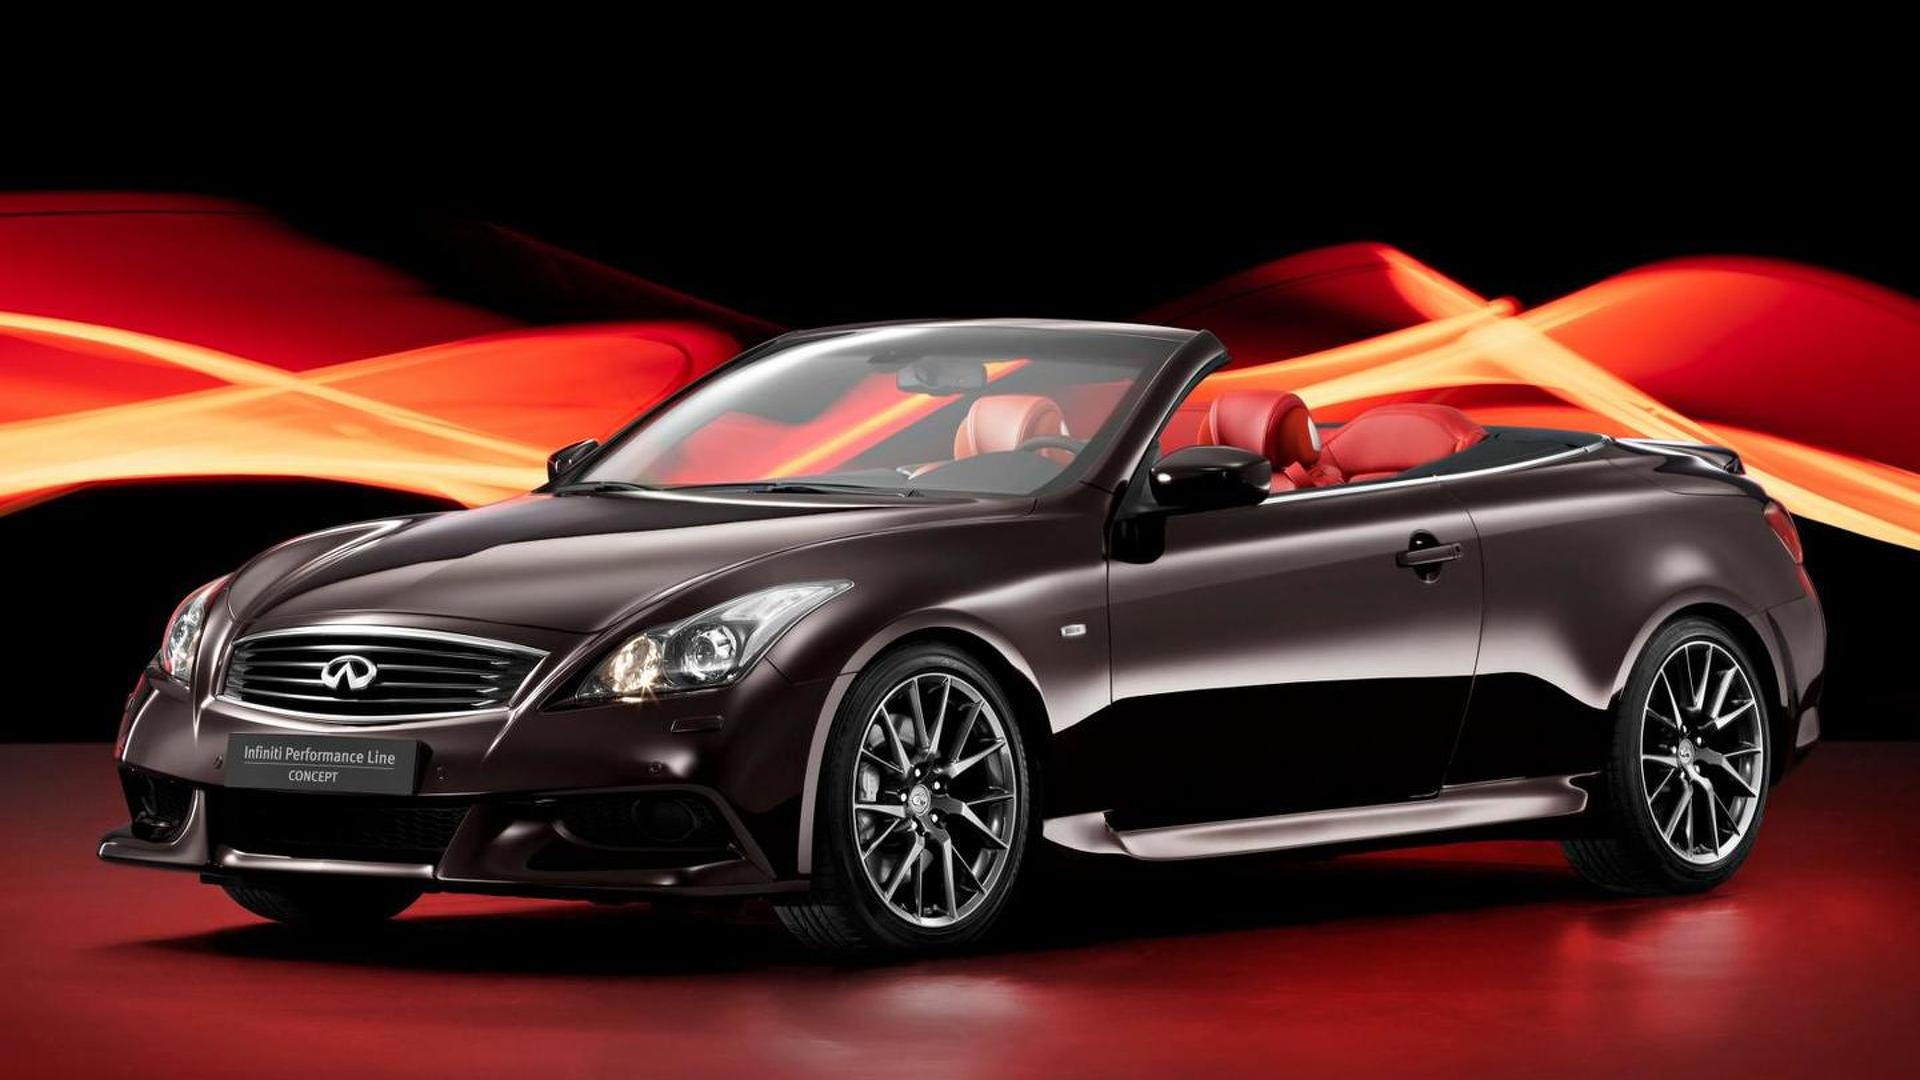 Infiniti to have AMG power plants under the hood?